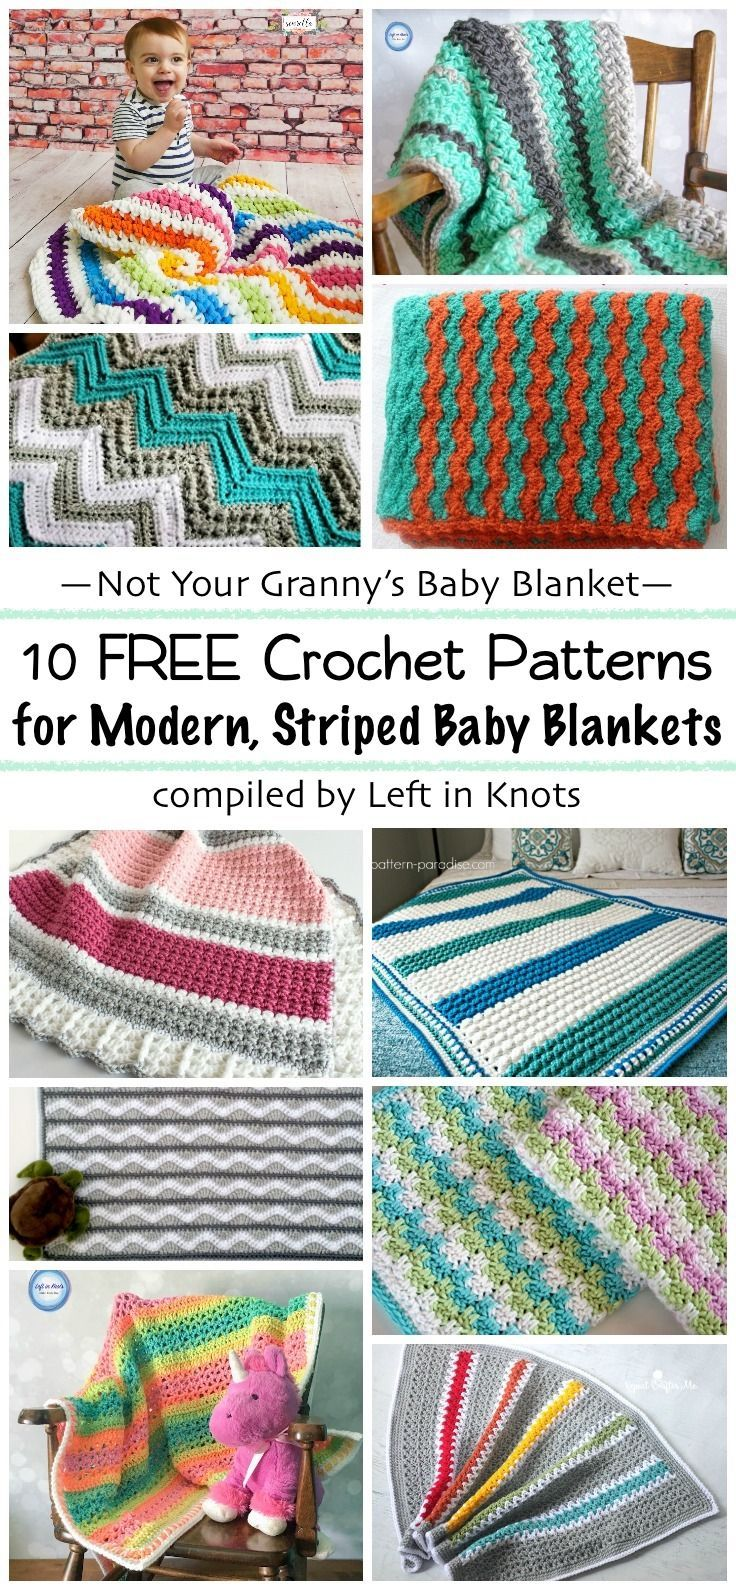 best crochet  free blanket and afghan patterns images on  -  free crochet patterns for striped baby blankets